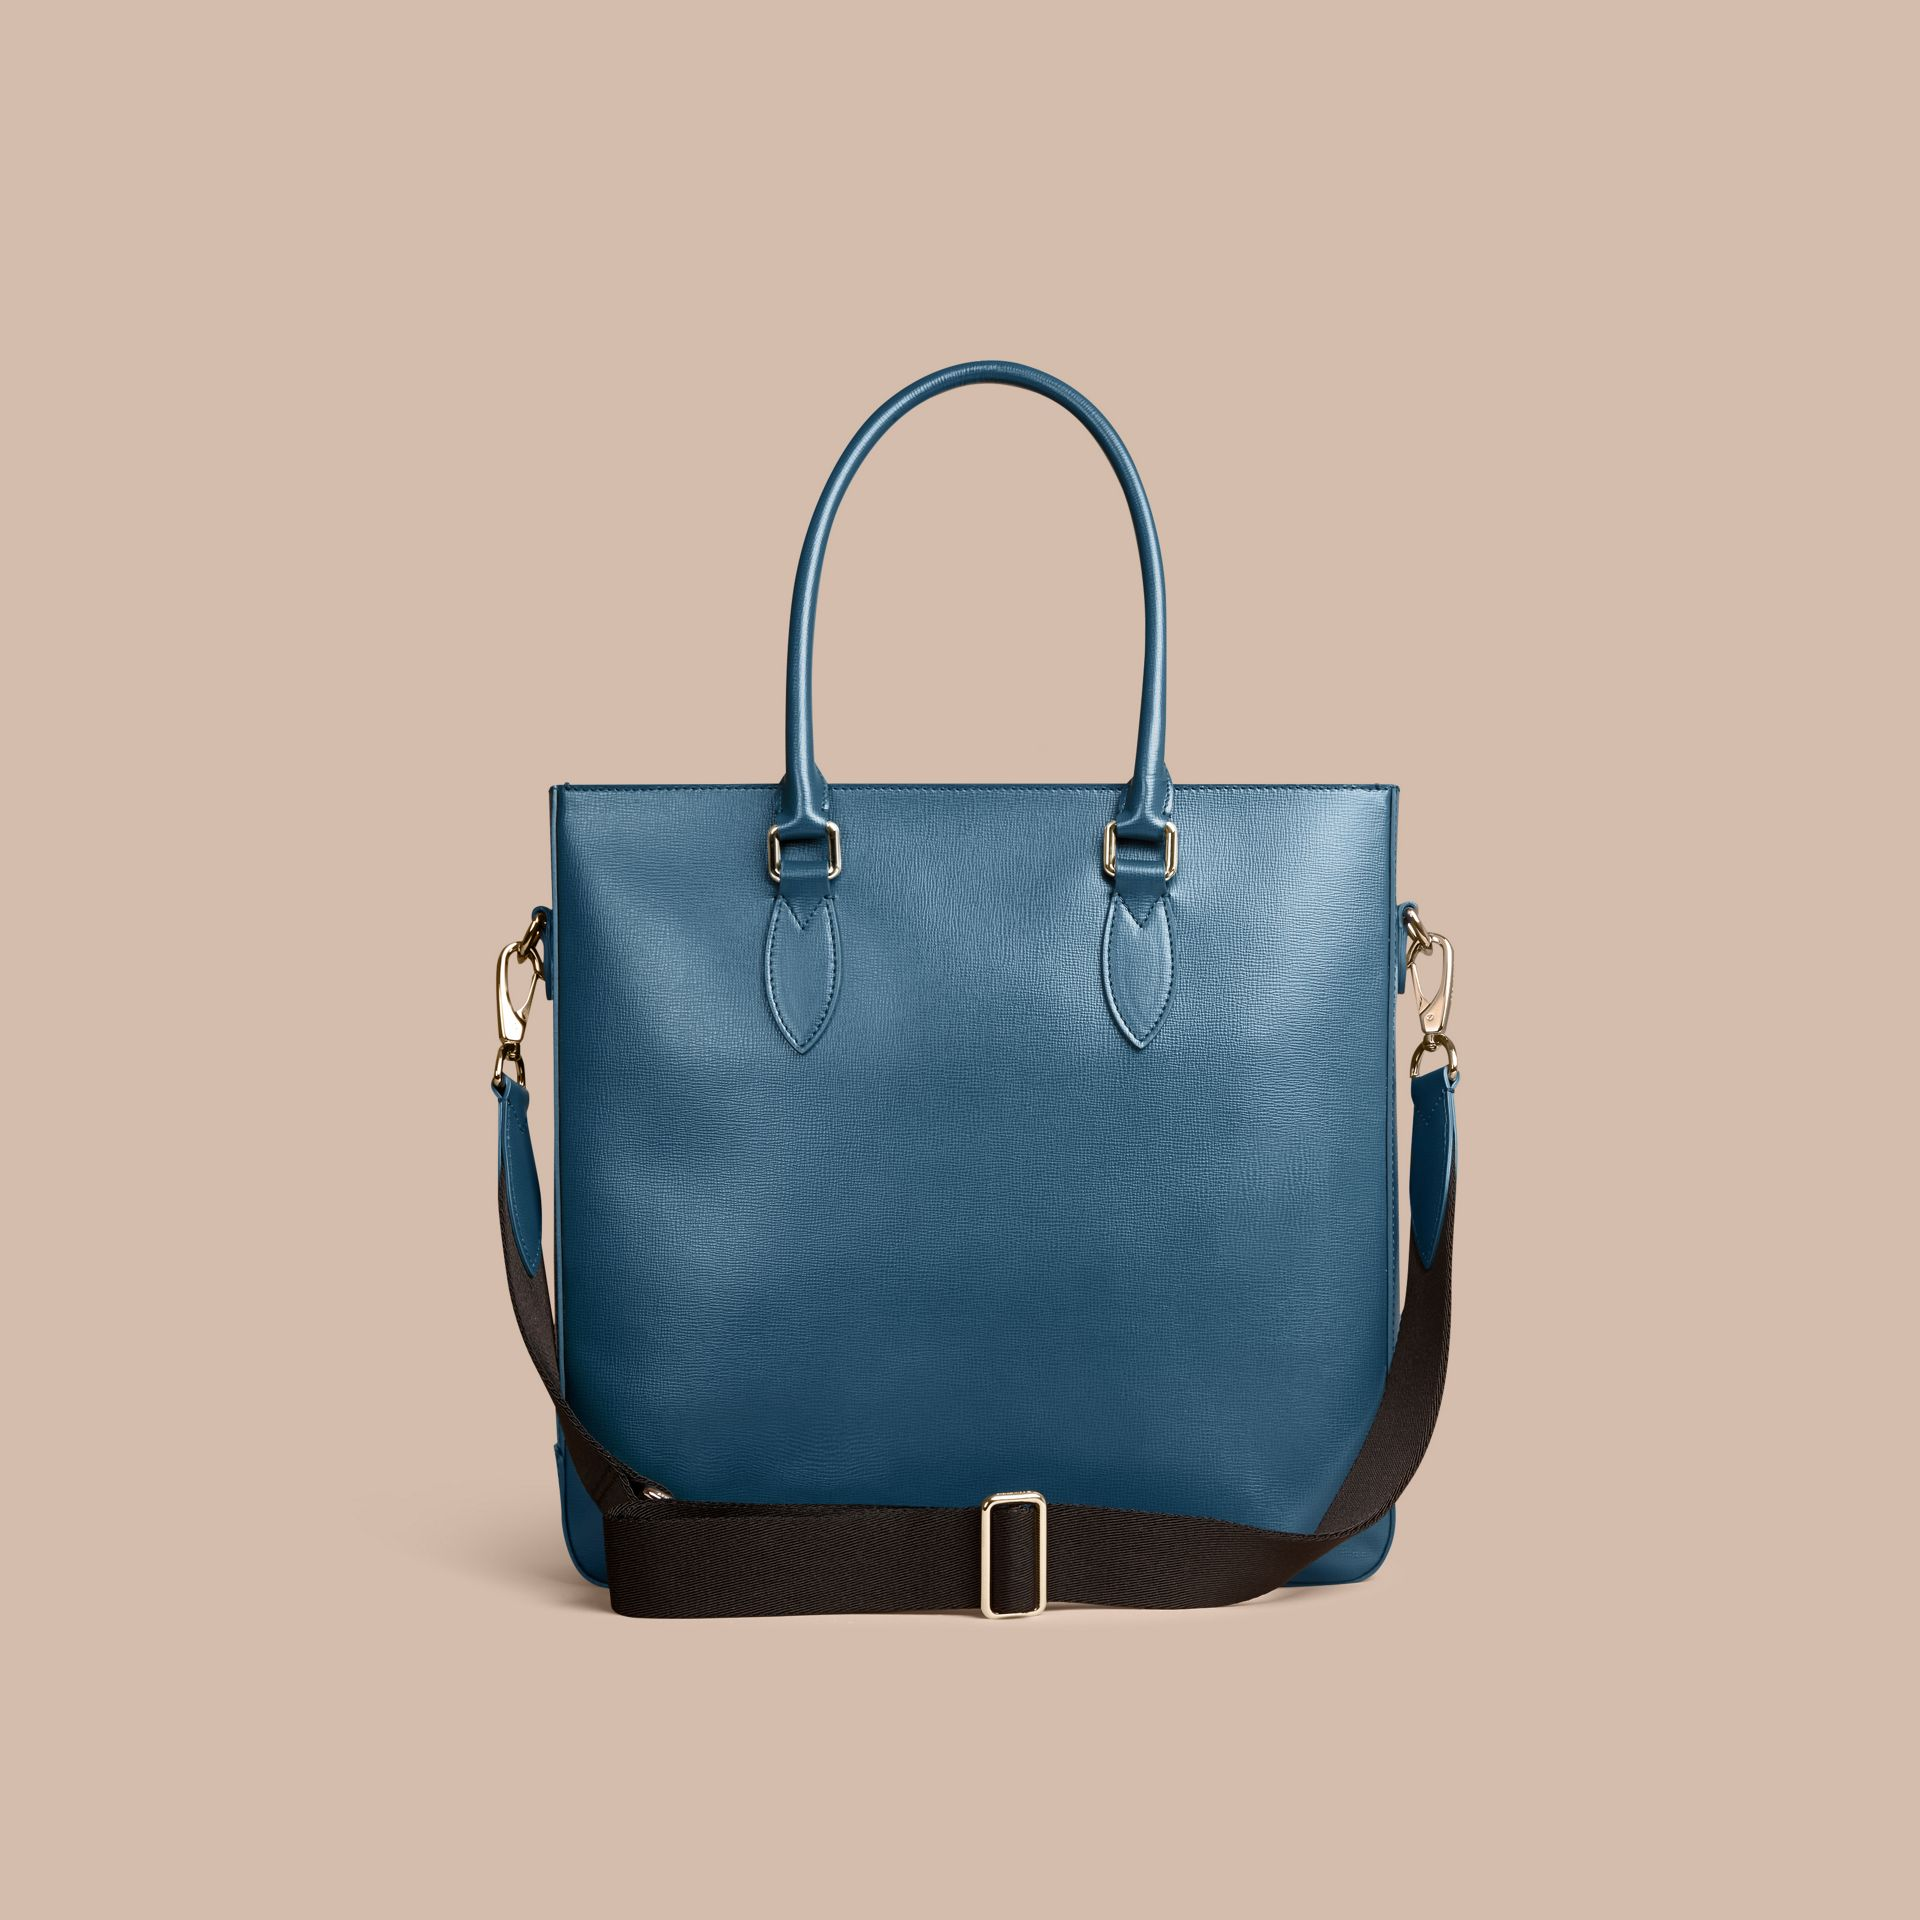 London Leather Tote Bag in Mineral Blue - Men | Burberry - gallery image 4